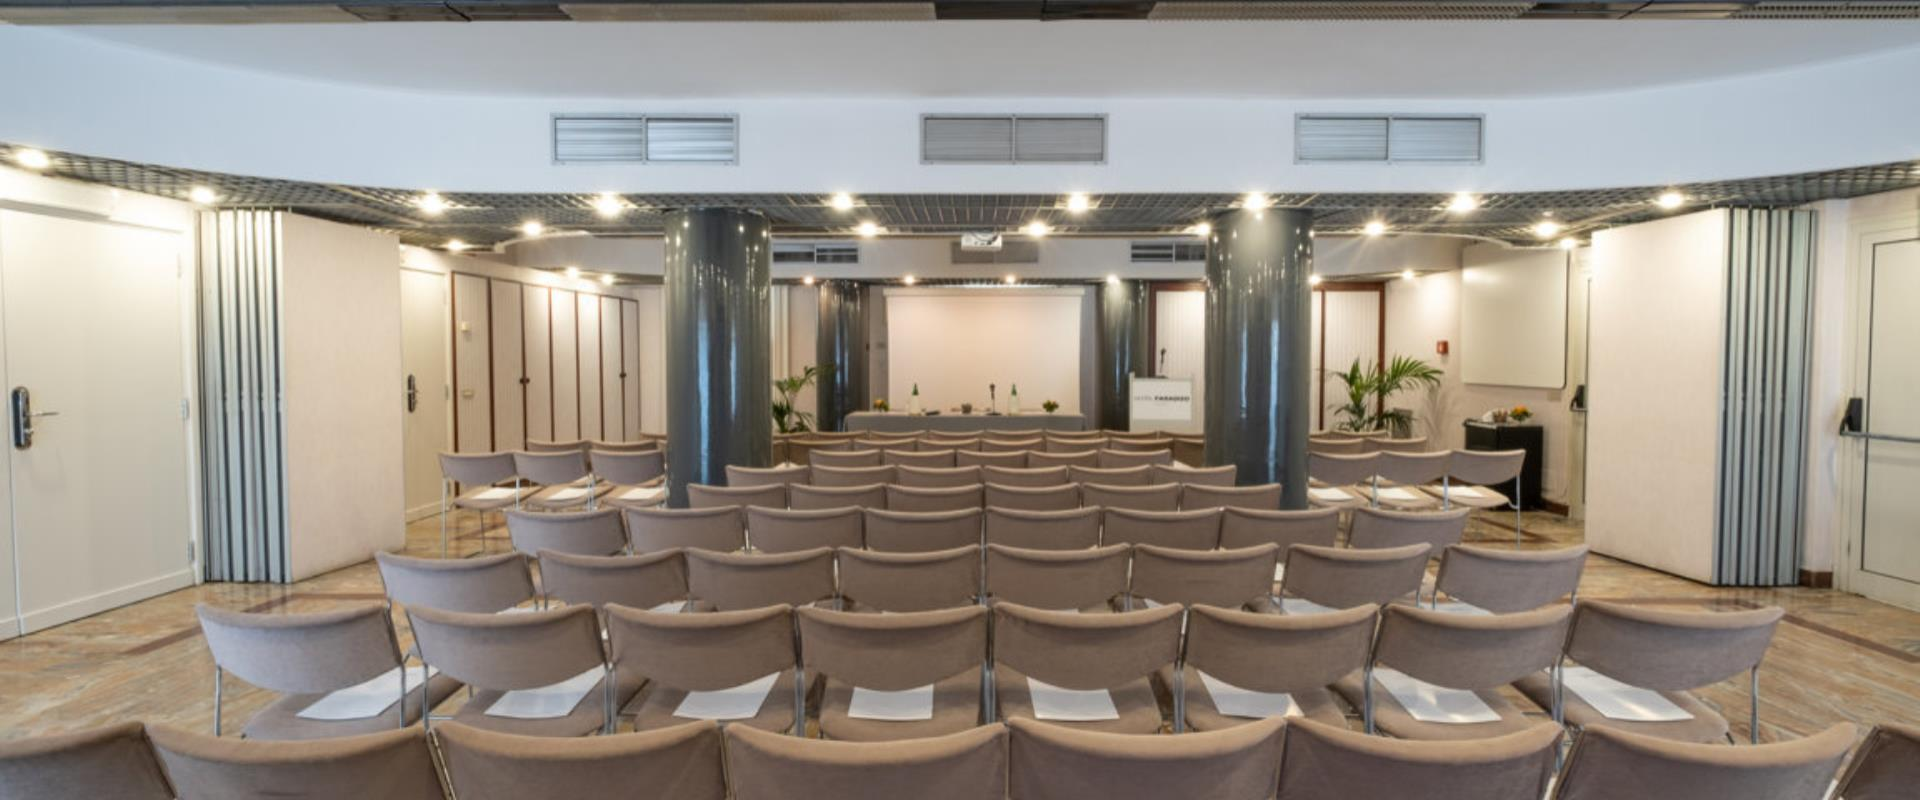 The BW Signature Collection Hotel Paradiso offers multifunctional meeting rooms for conferences, meetings, exhibitions and events of all kinds.